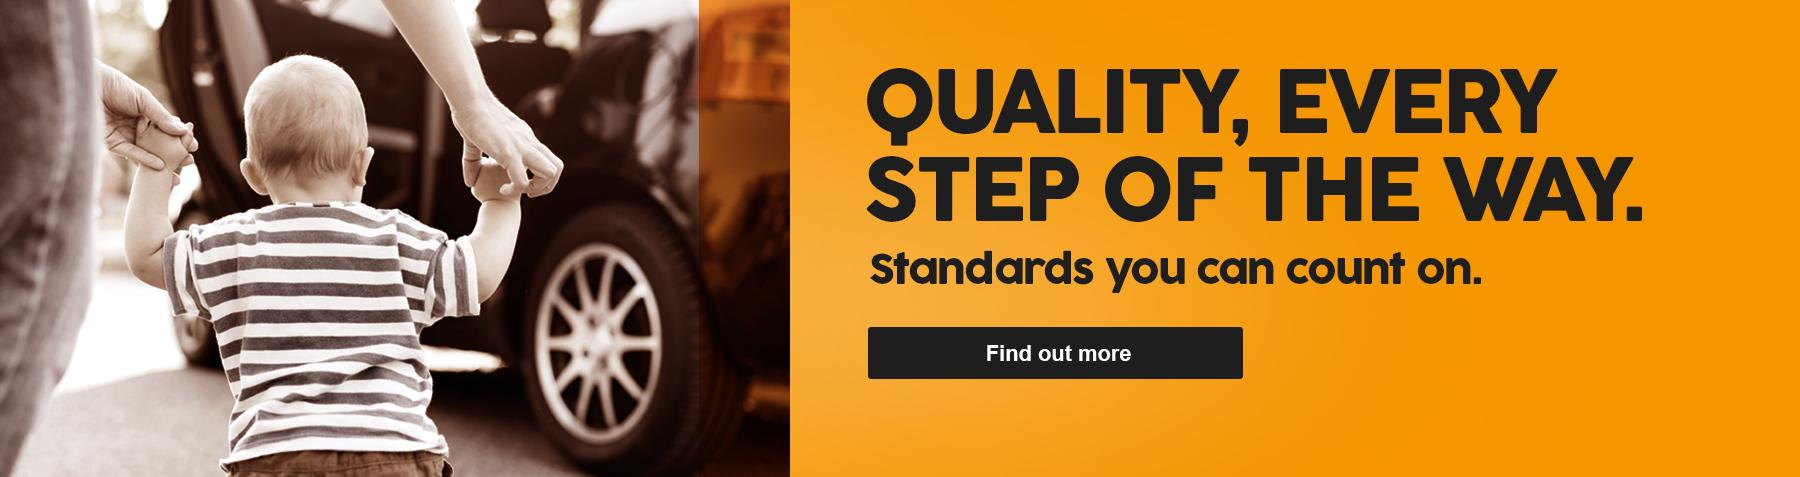 Quality every step of the way